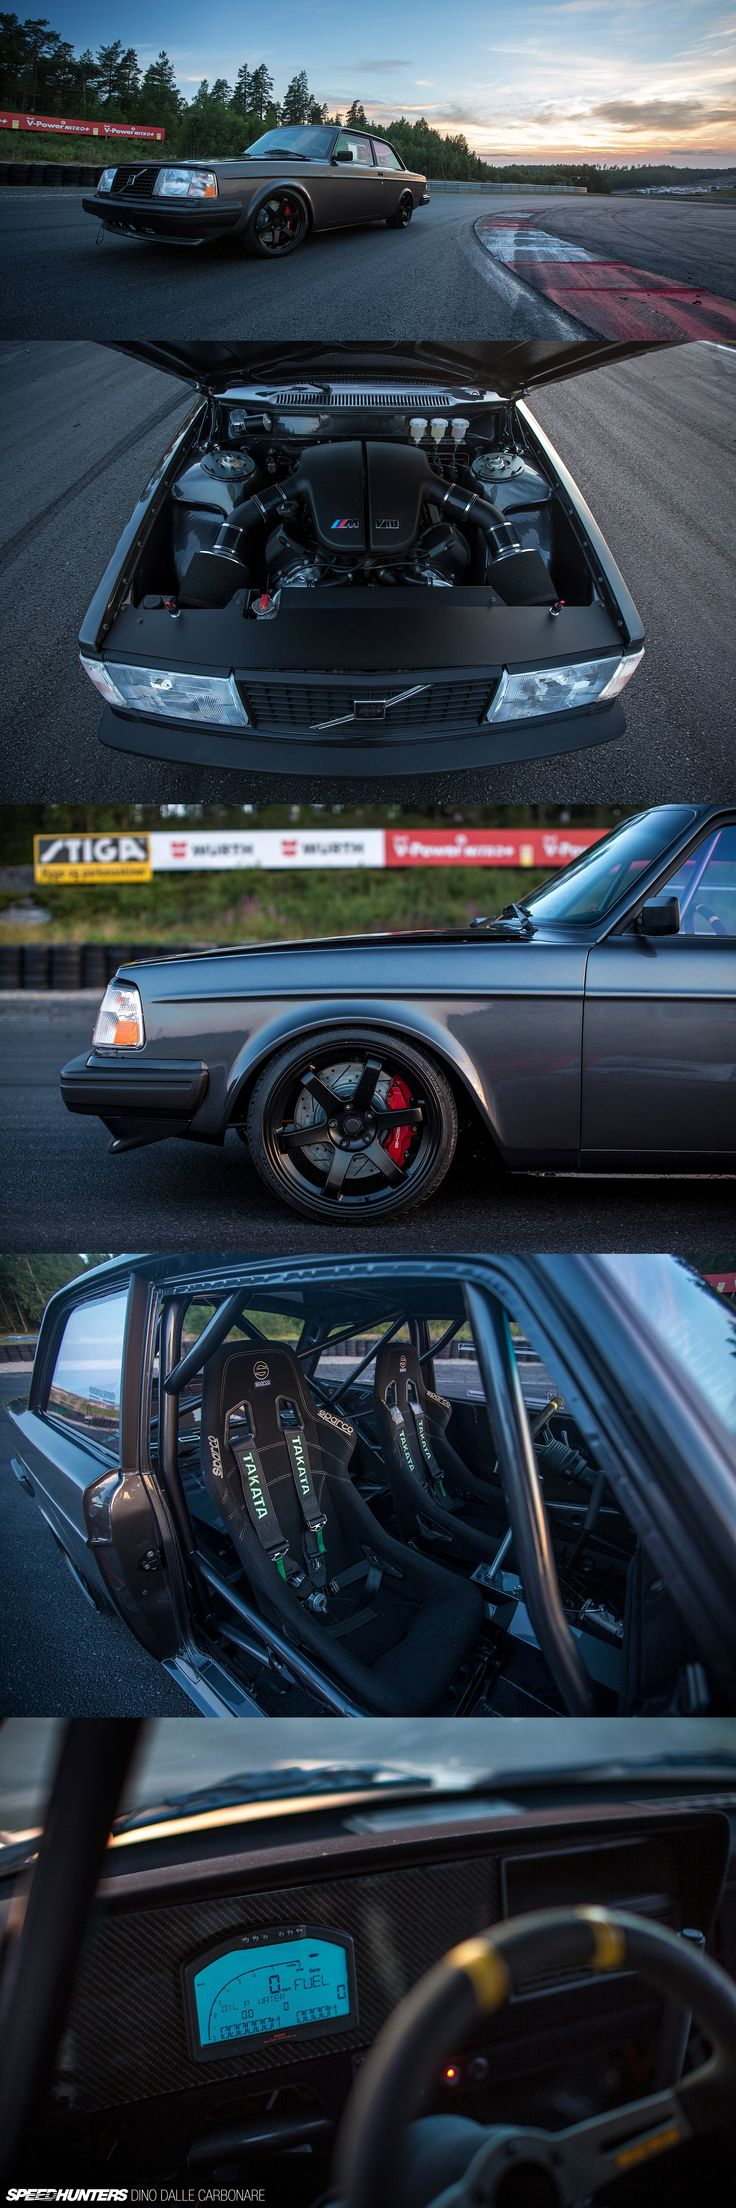 Volvo 242 Coupe with a BMW V10 and Porsche Brakes